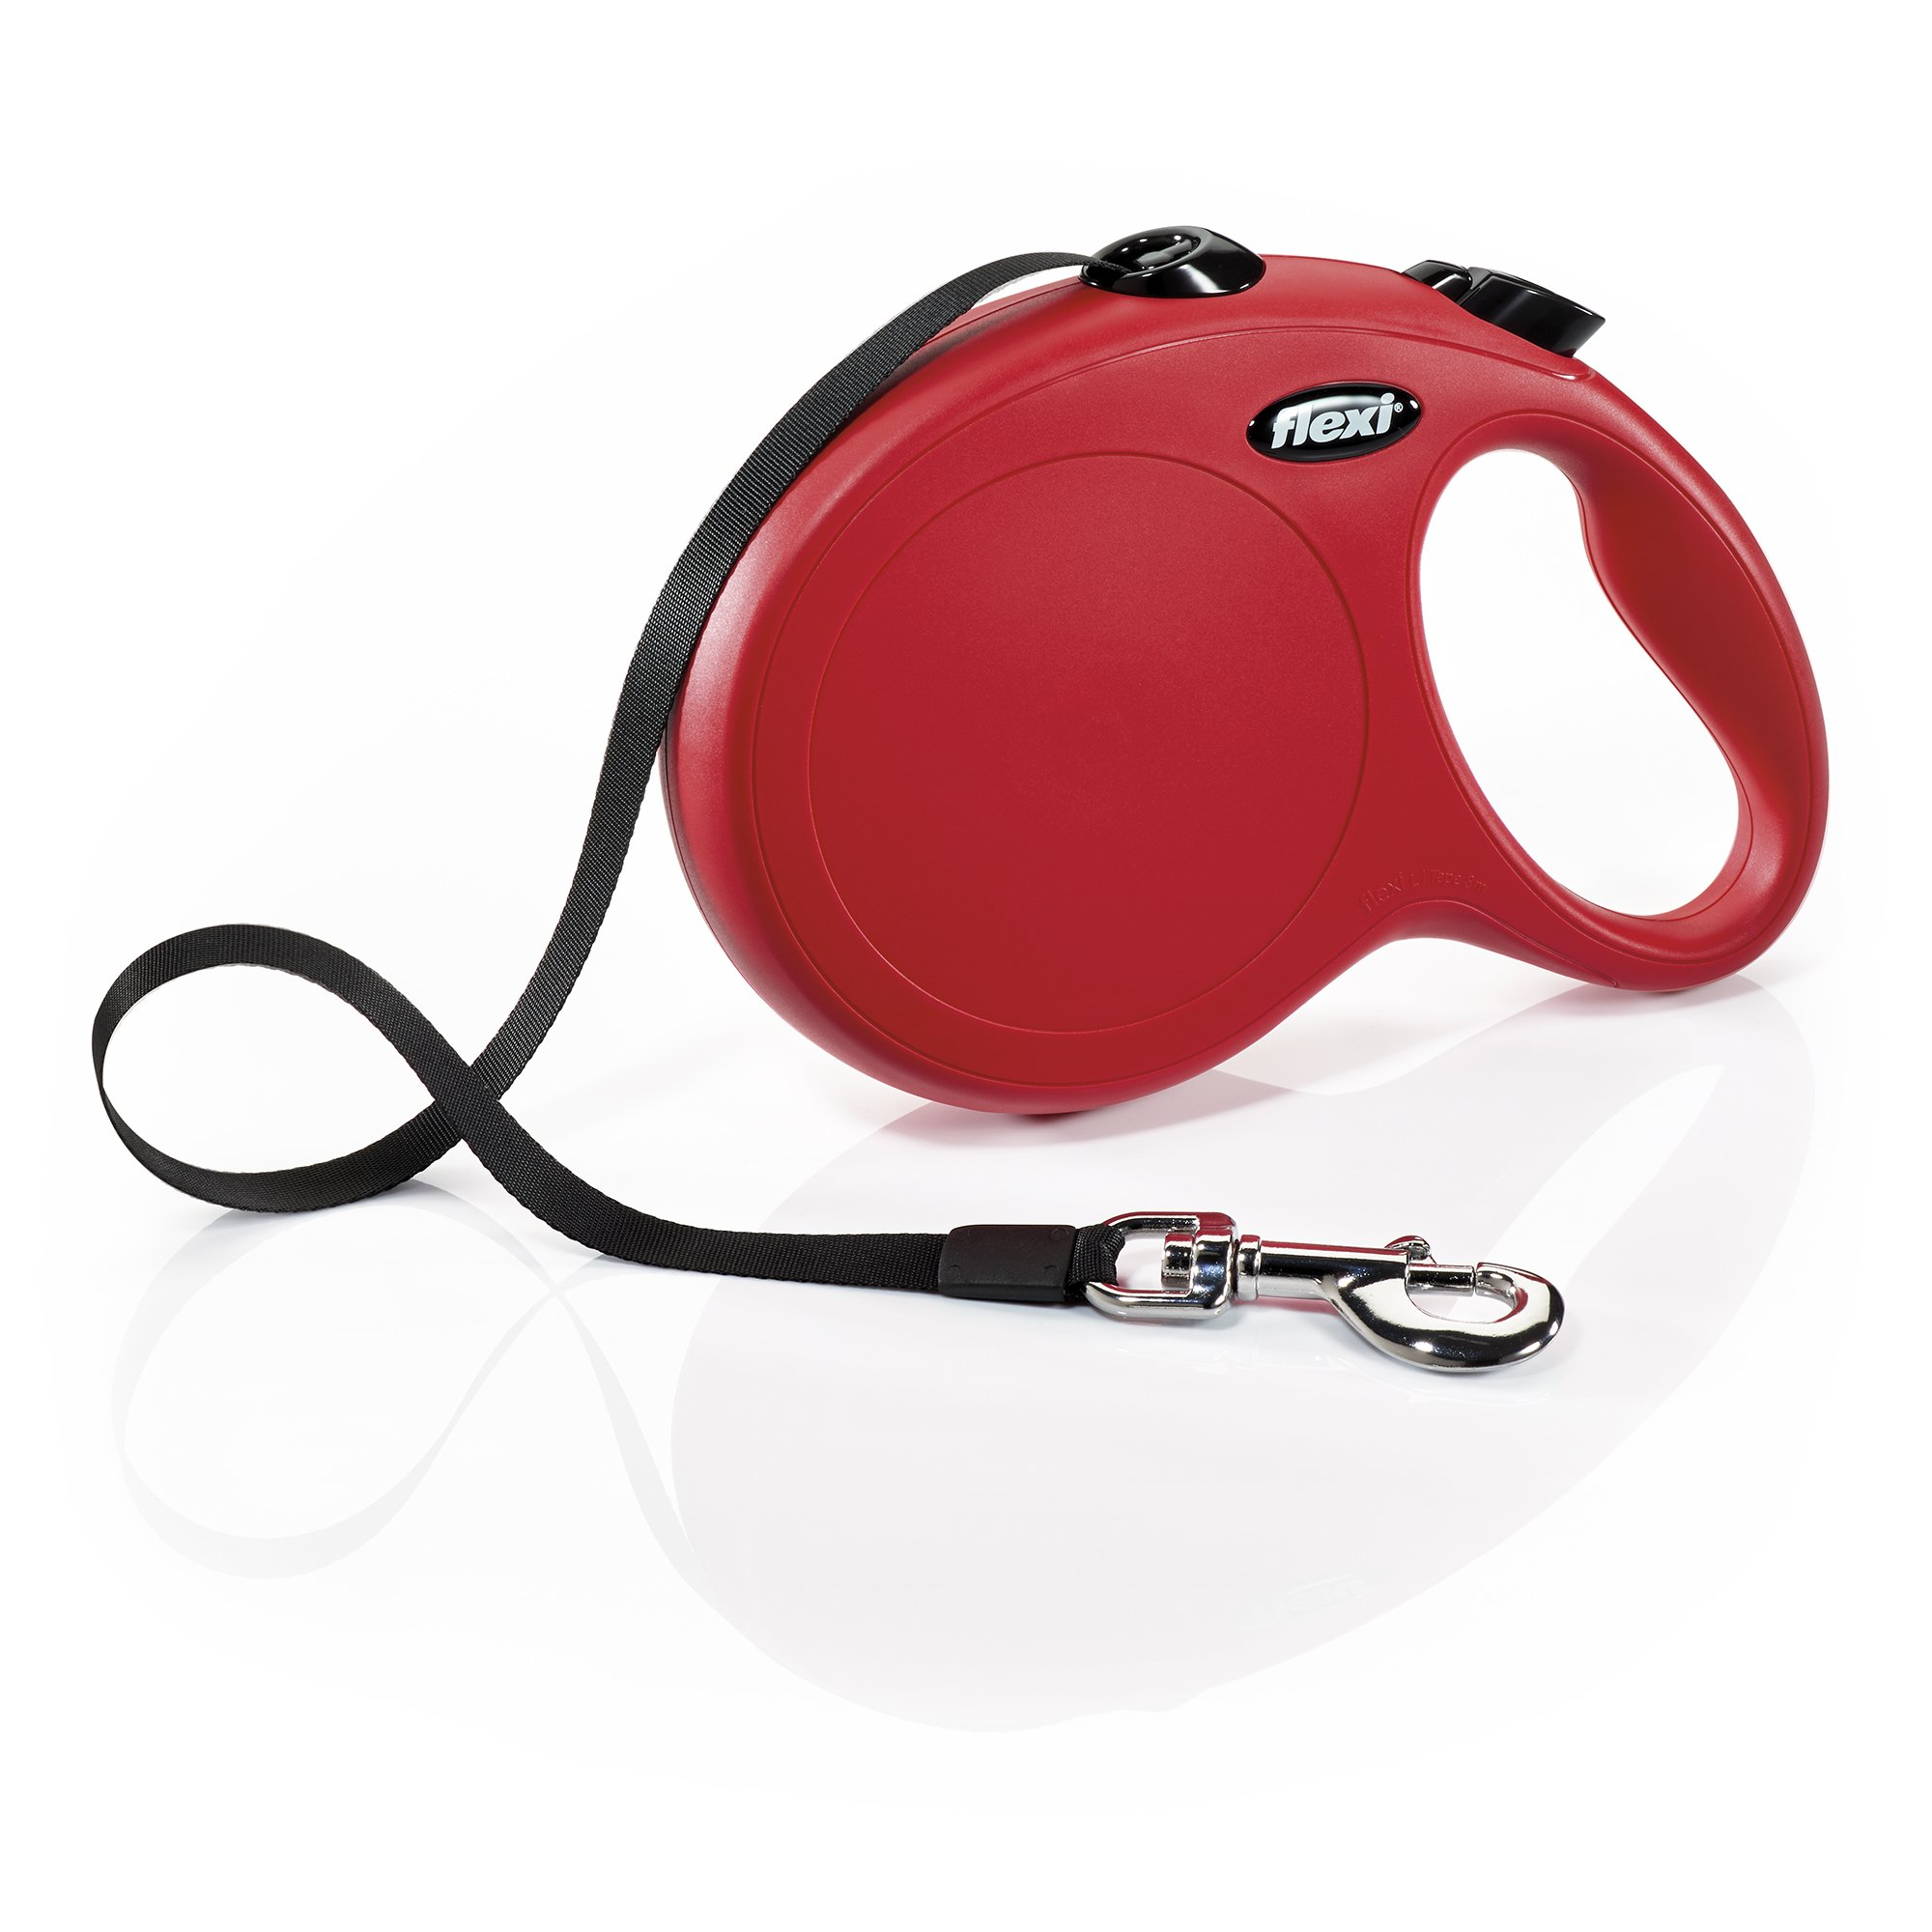 Flexi New Classic Tape Retractable Leash, Red, Large/26'